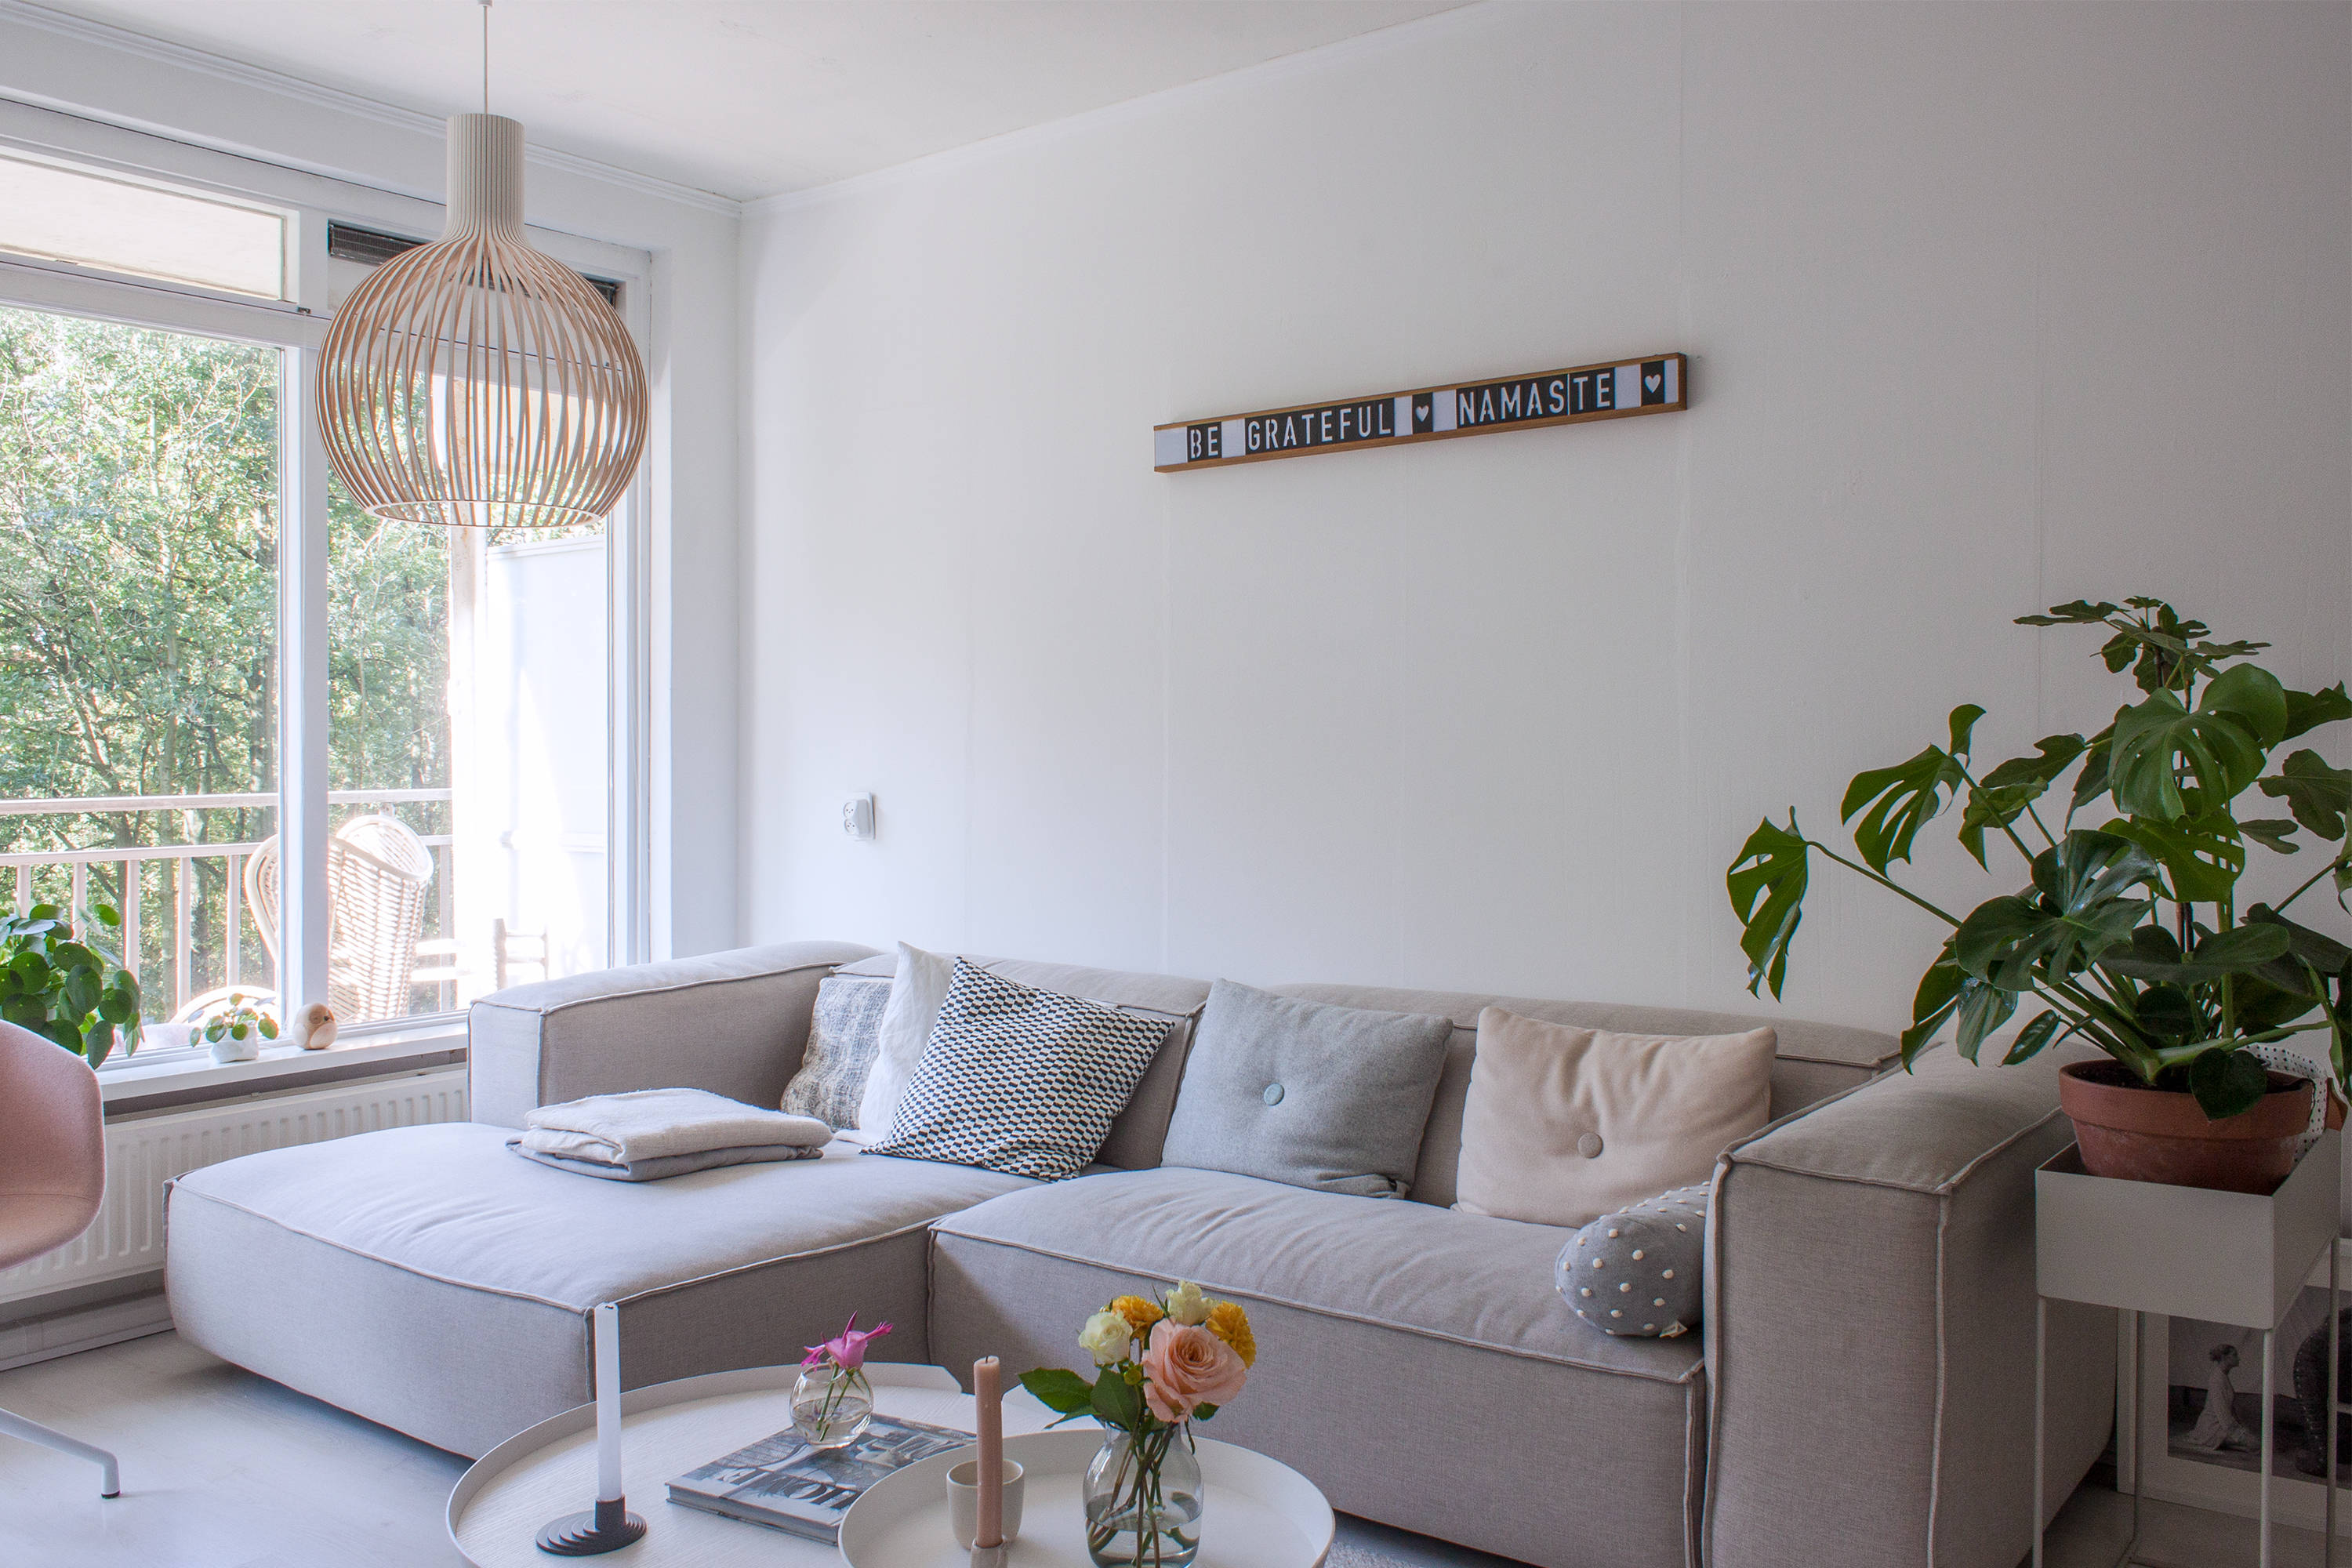 The Best Home Decor Items From Ikea According To Designers Apartment Therapy